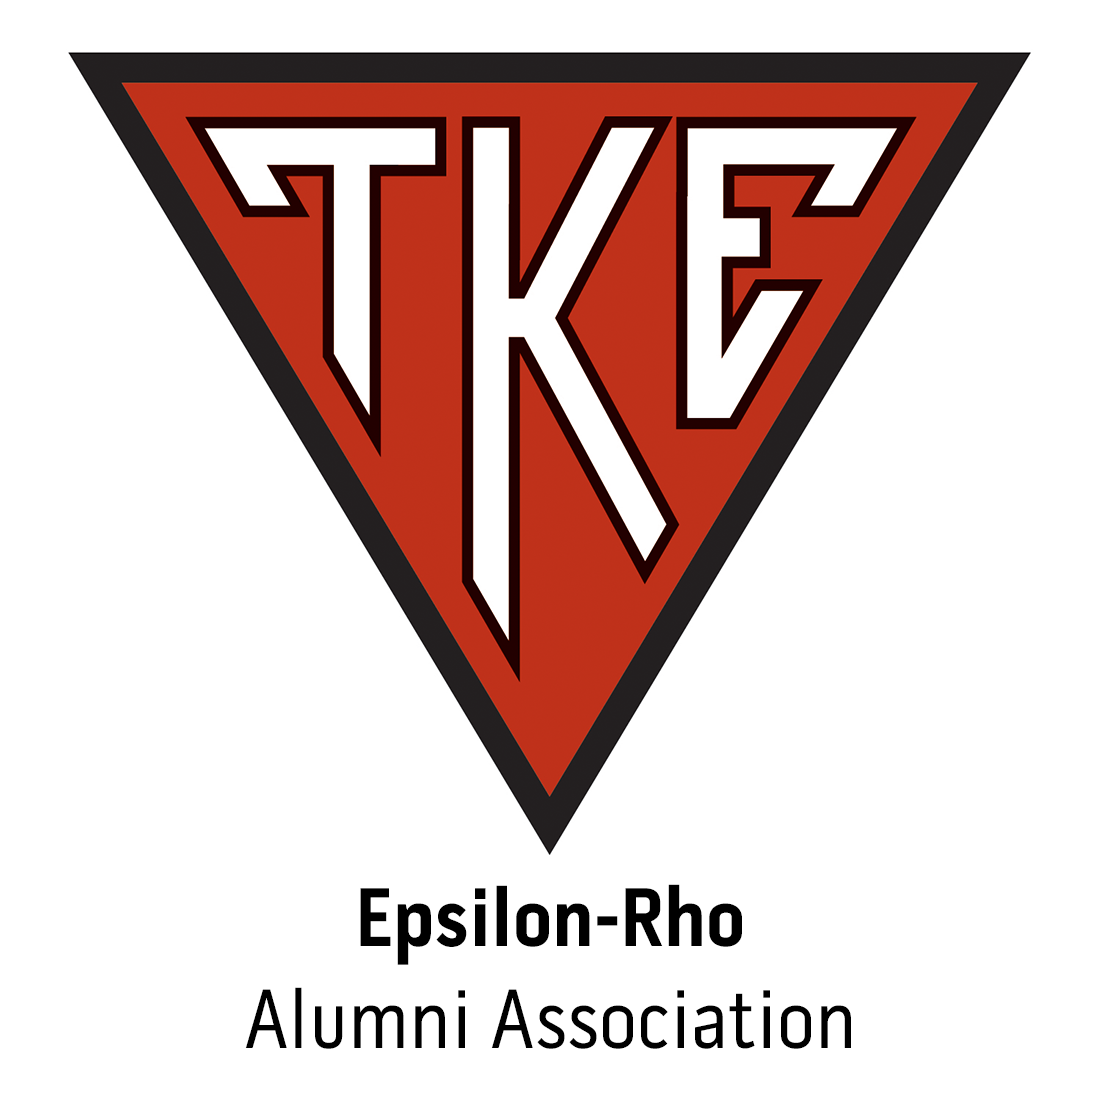 Epsilon-Rho Alumni Association at Northern Arizona University